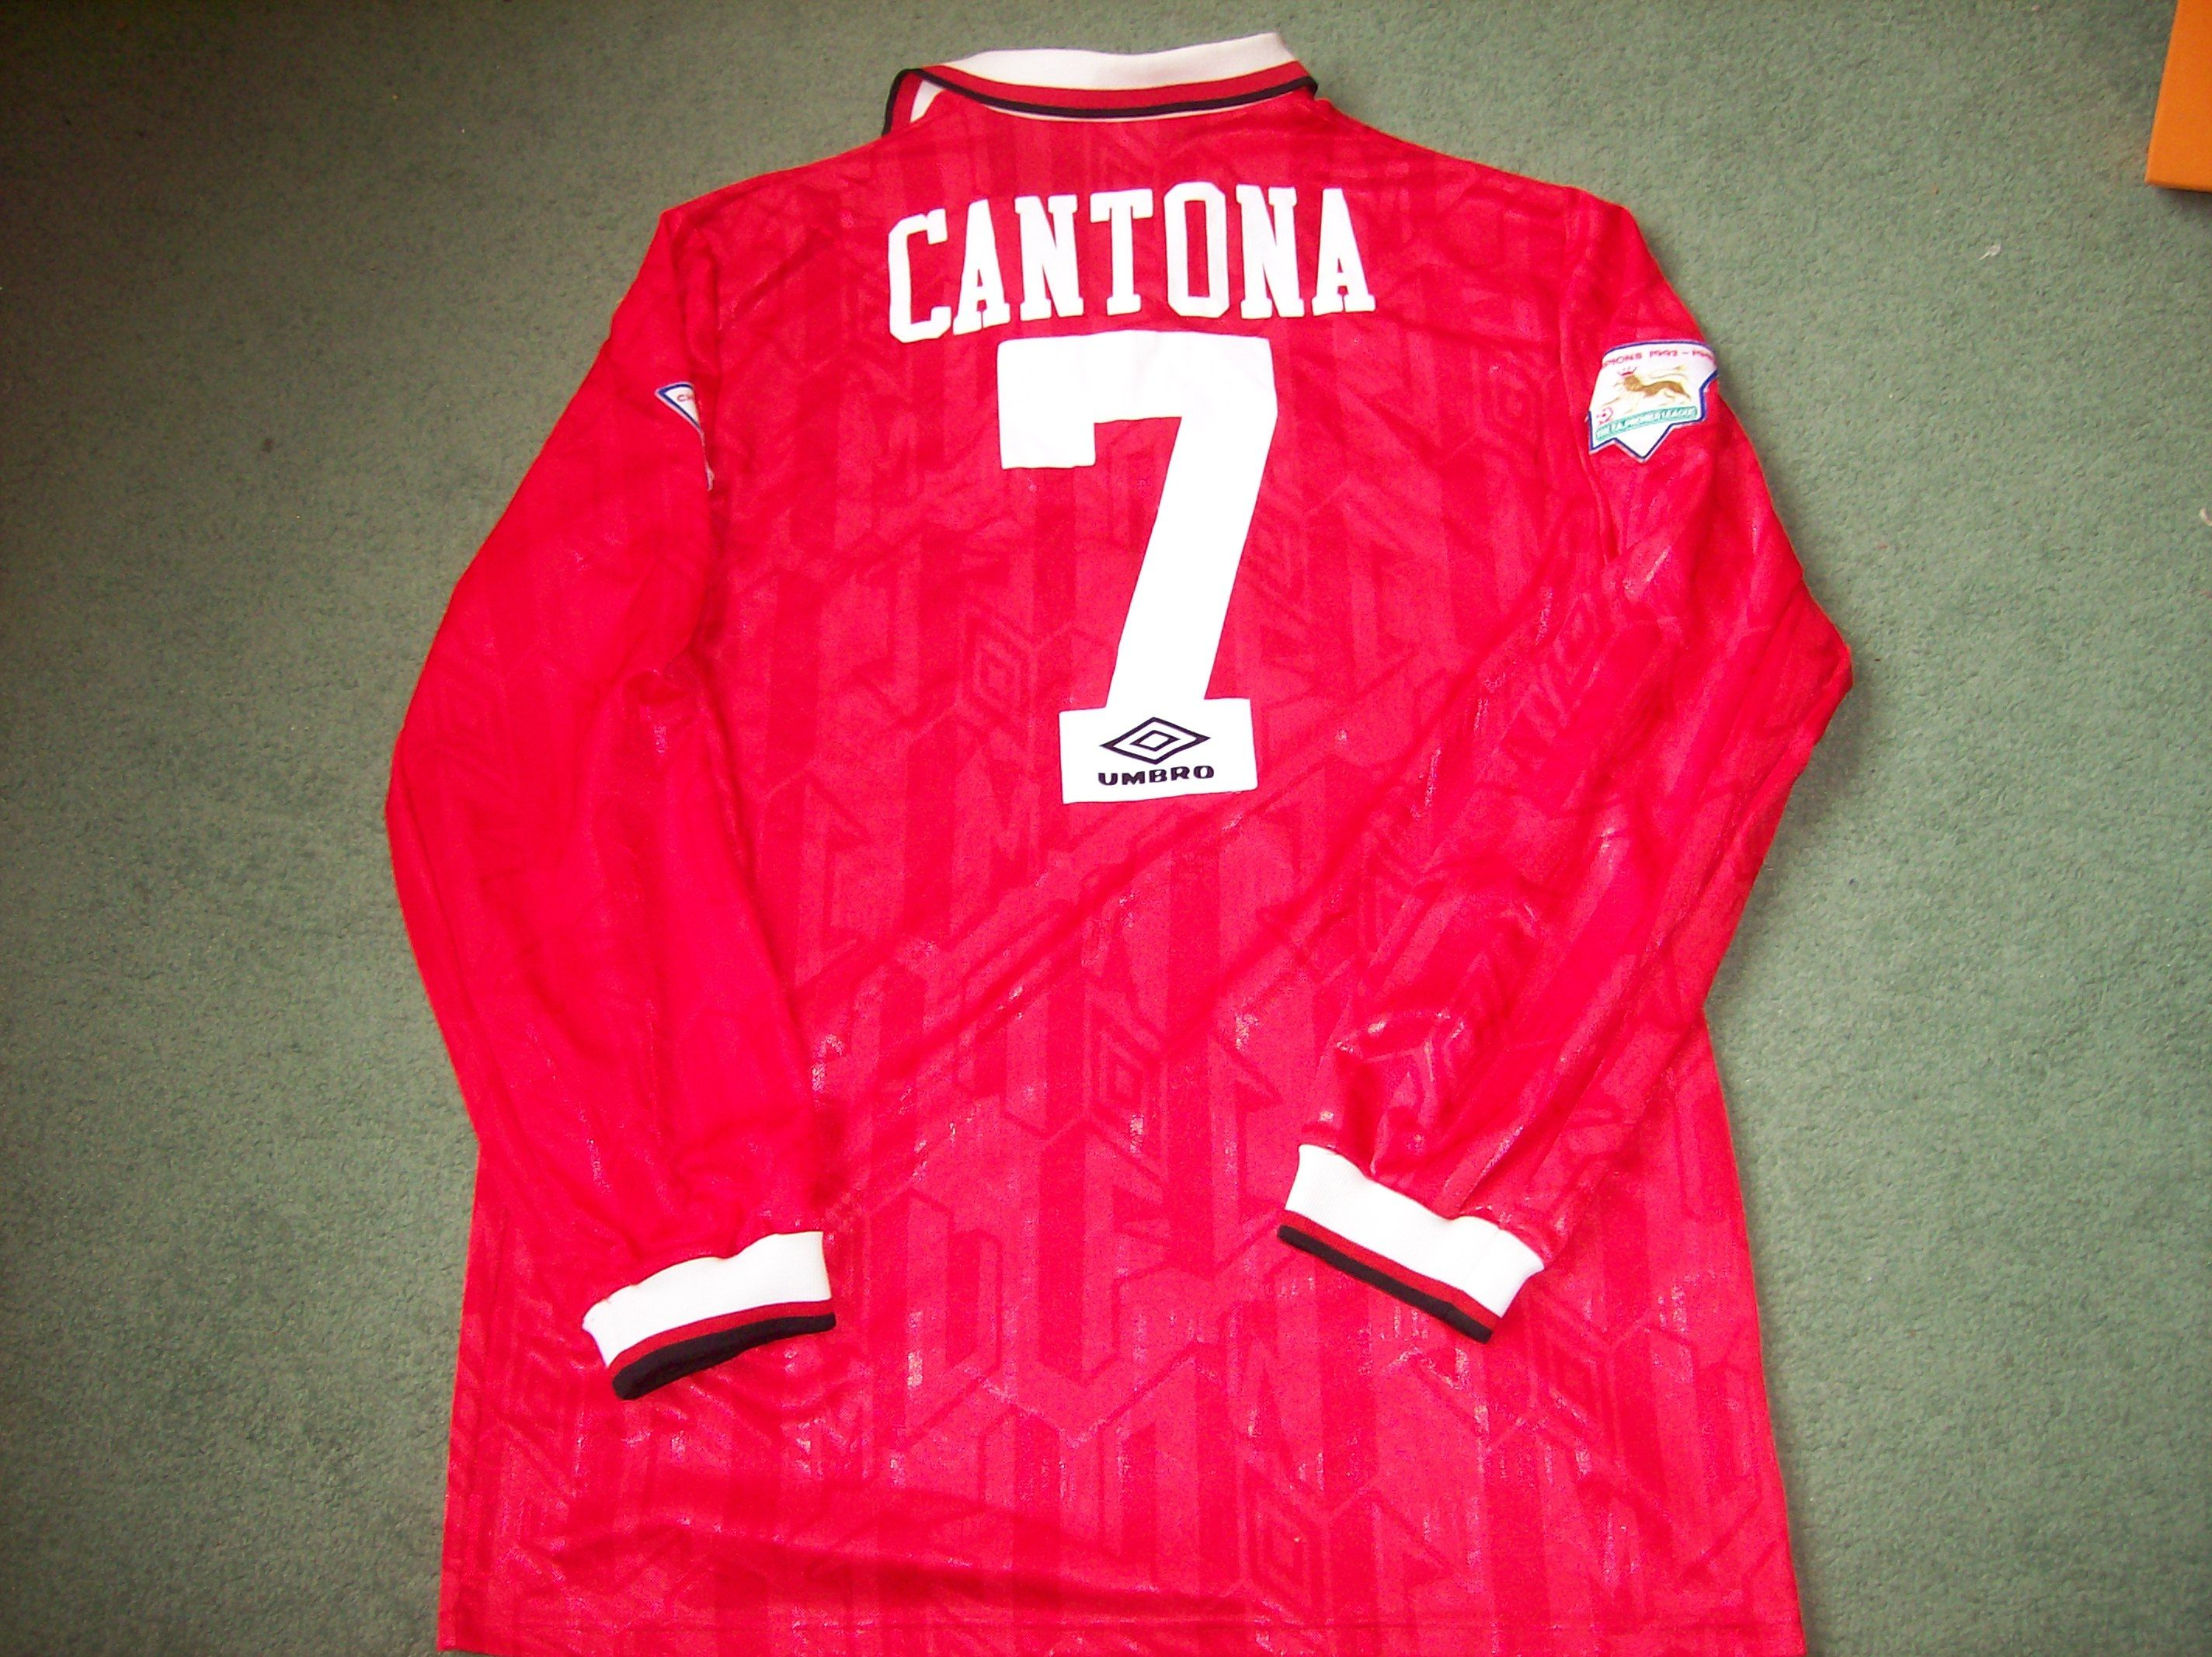 c6245b4399b Manchester United L s Long sleeved football shirt from the 1993 94 season.  Player Issue Cantona   number 7 on the back